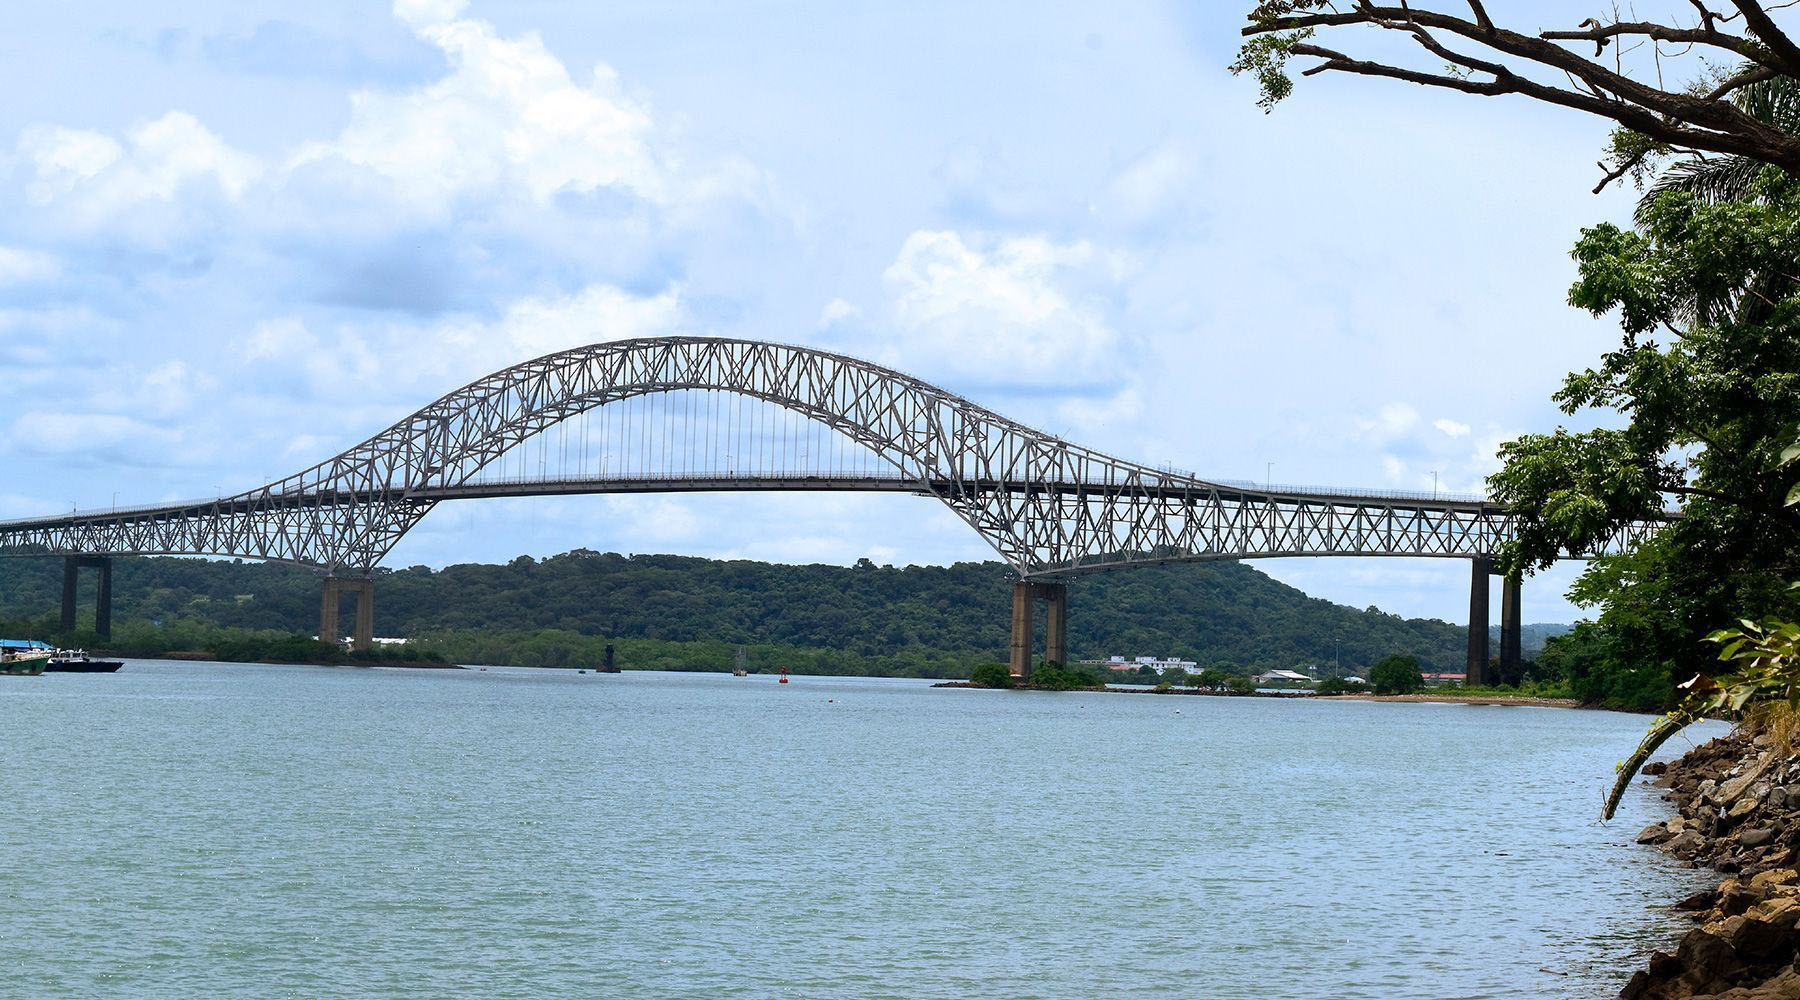 Luxury Cruise to Panama Canal